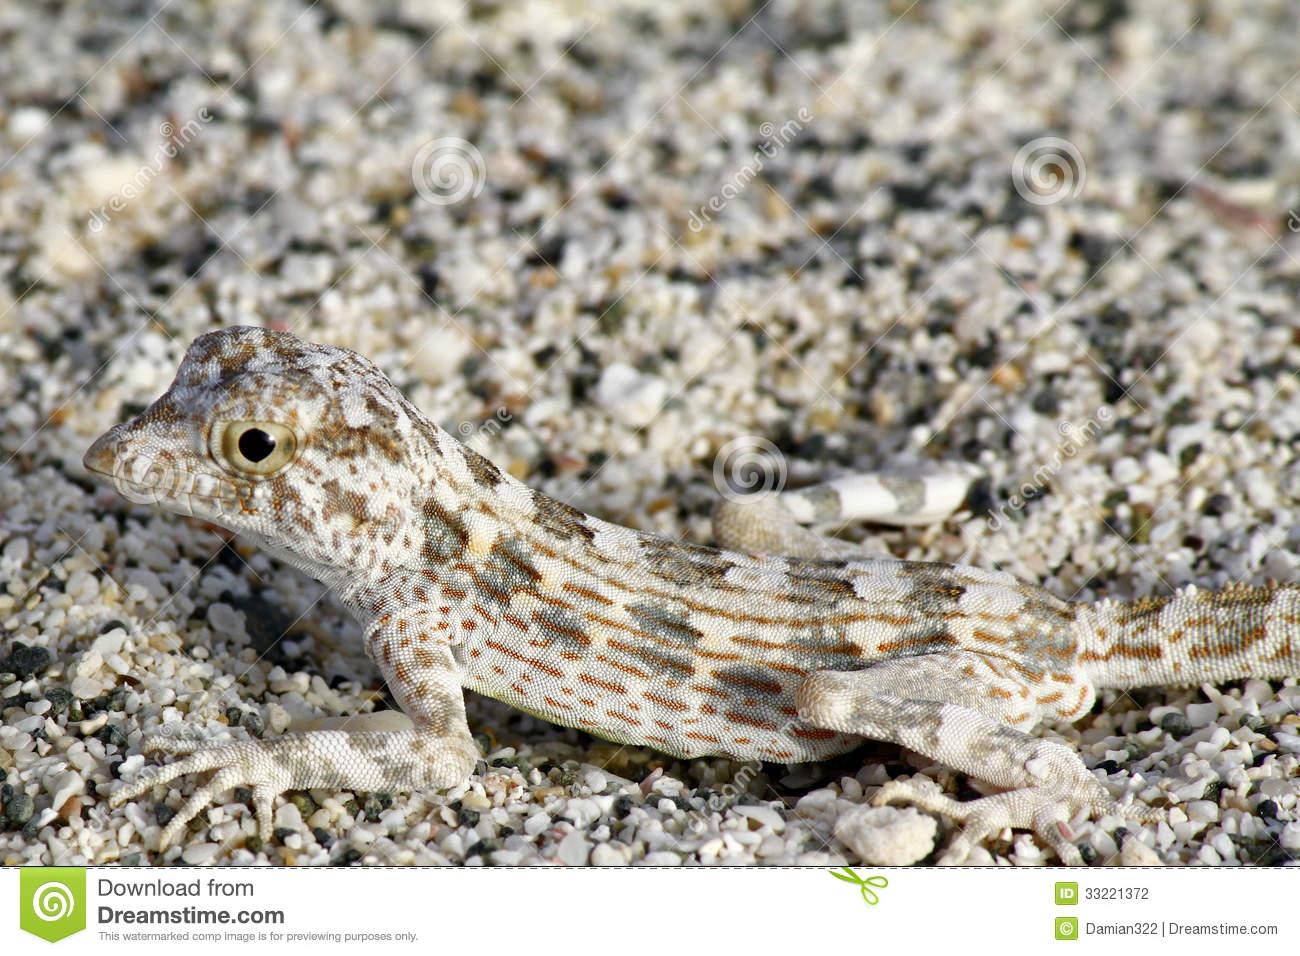 Lizards camouflage themselves by choosing rocks that best match ...